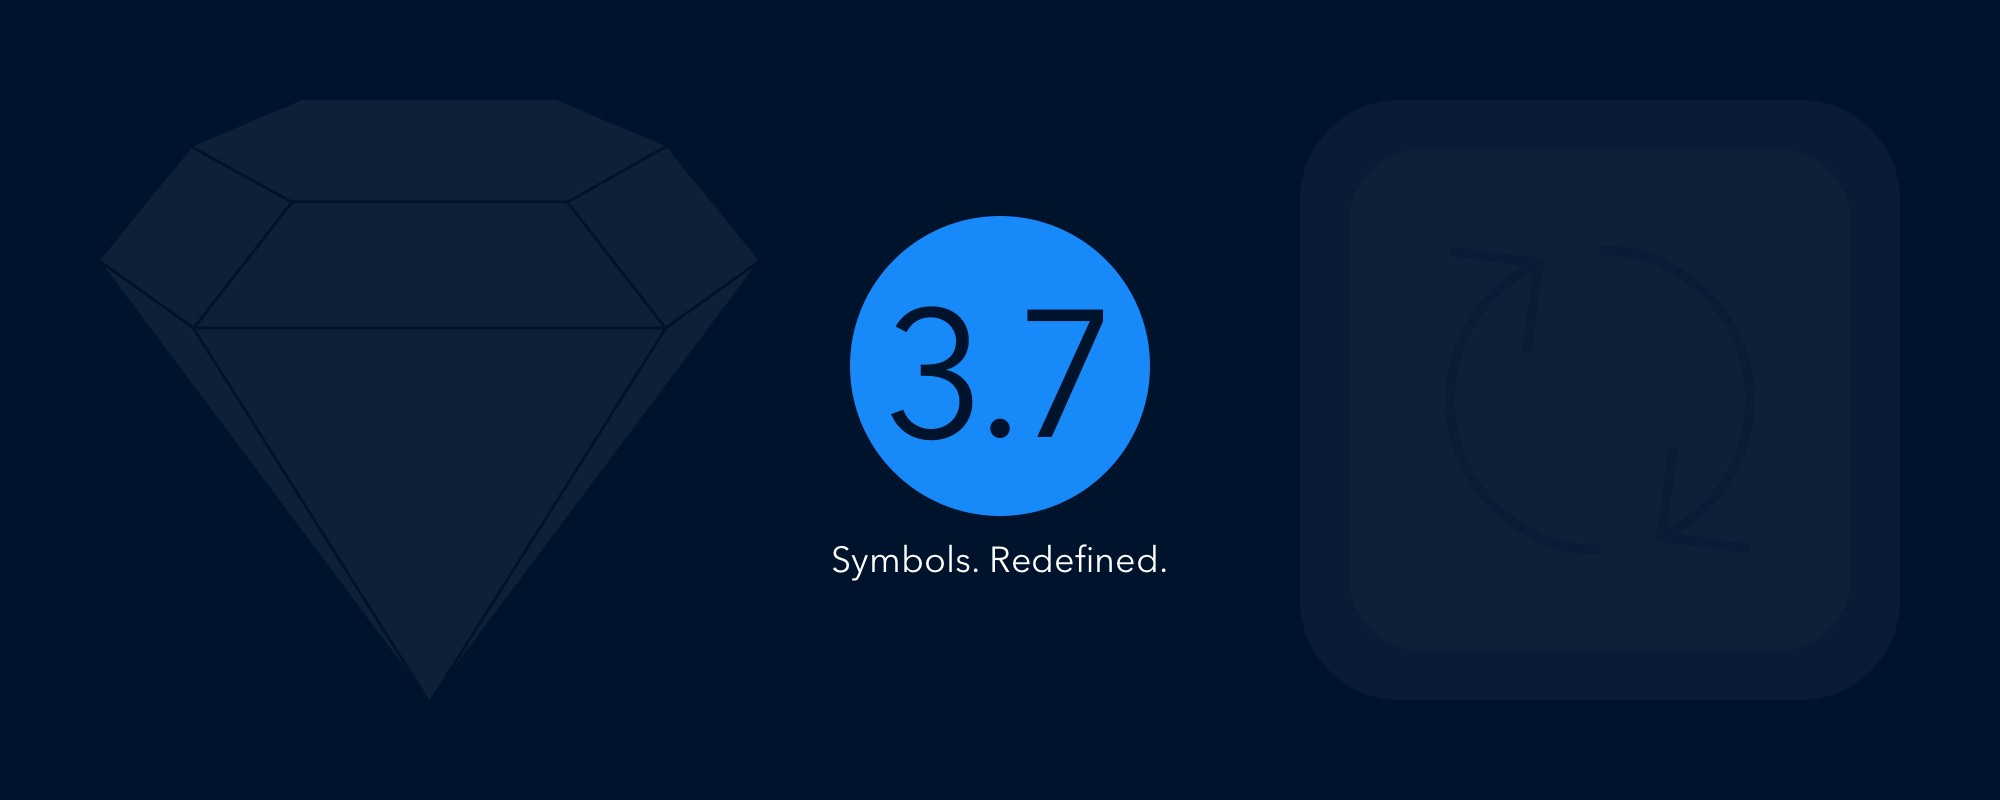 If Sketch 37 New Symbol Can Be Like This Minitheory Design Medium